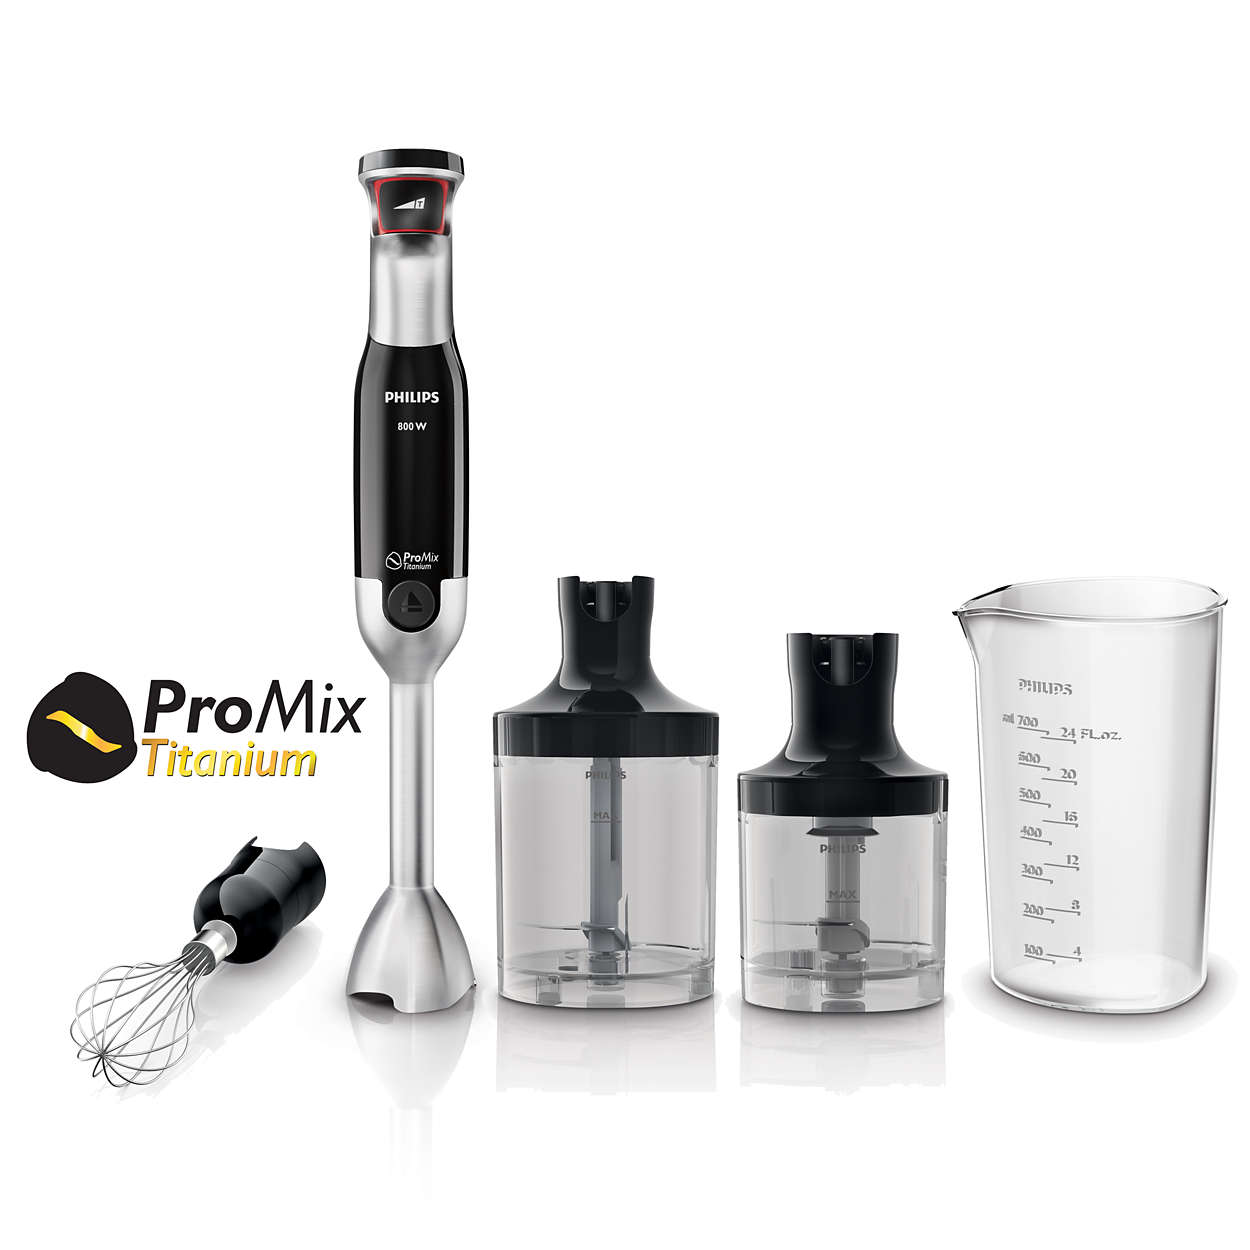 Powerful and easy control handblender